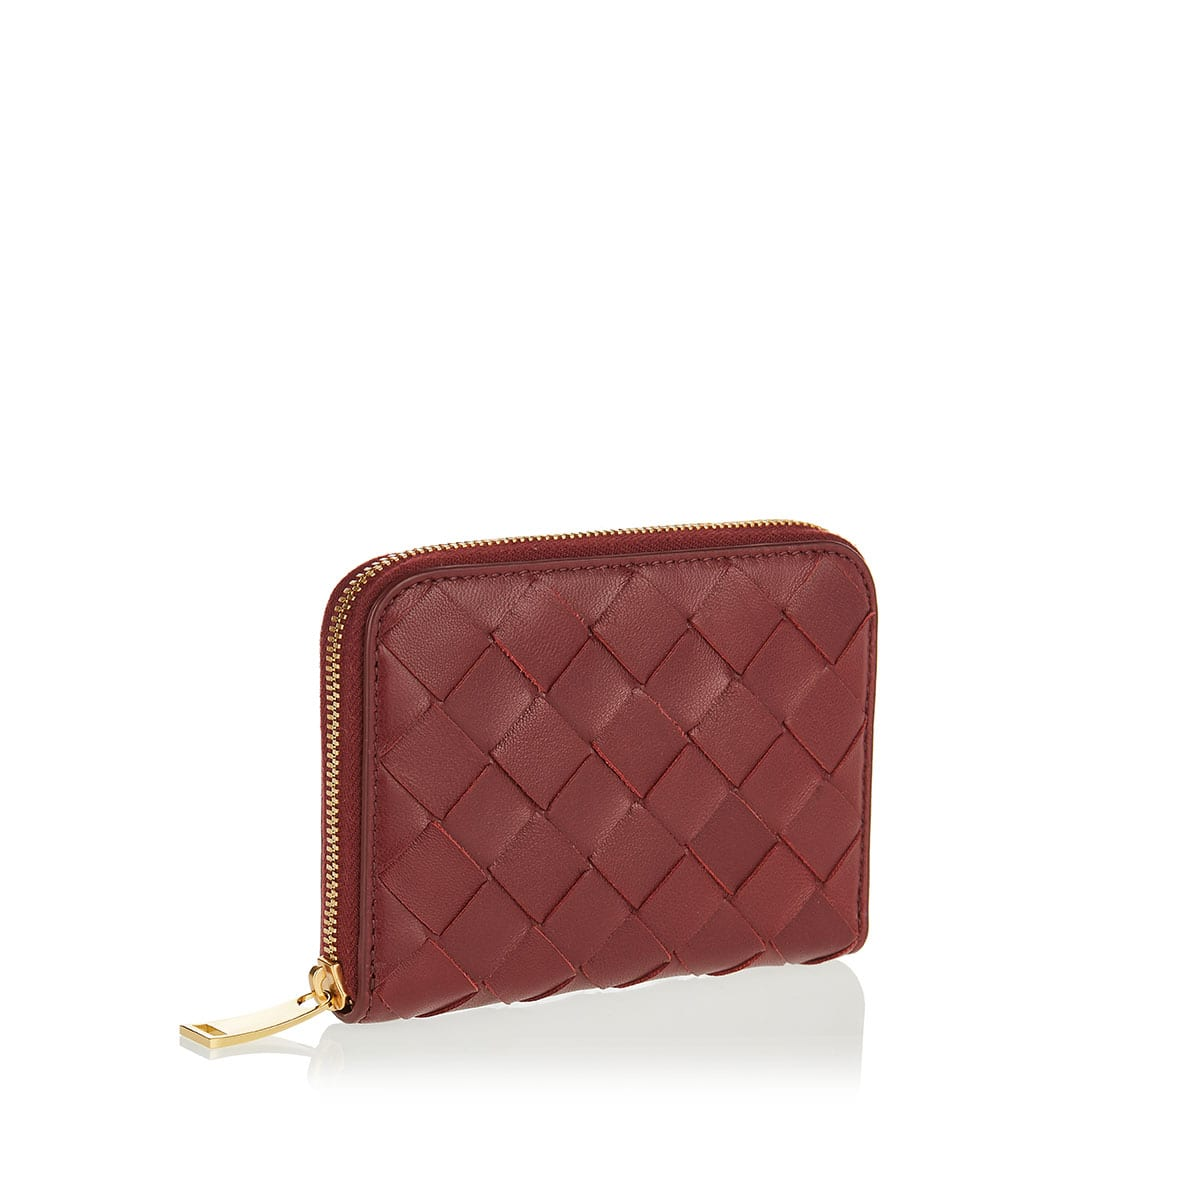 Intrecciato small leather wallet